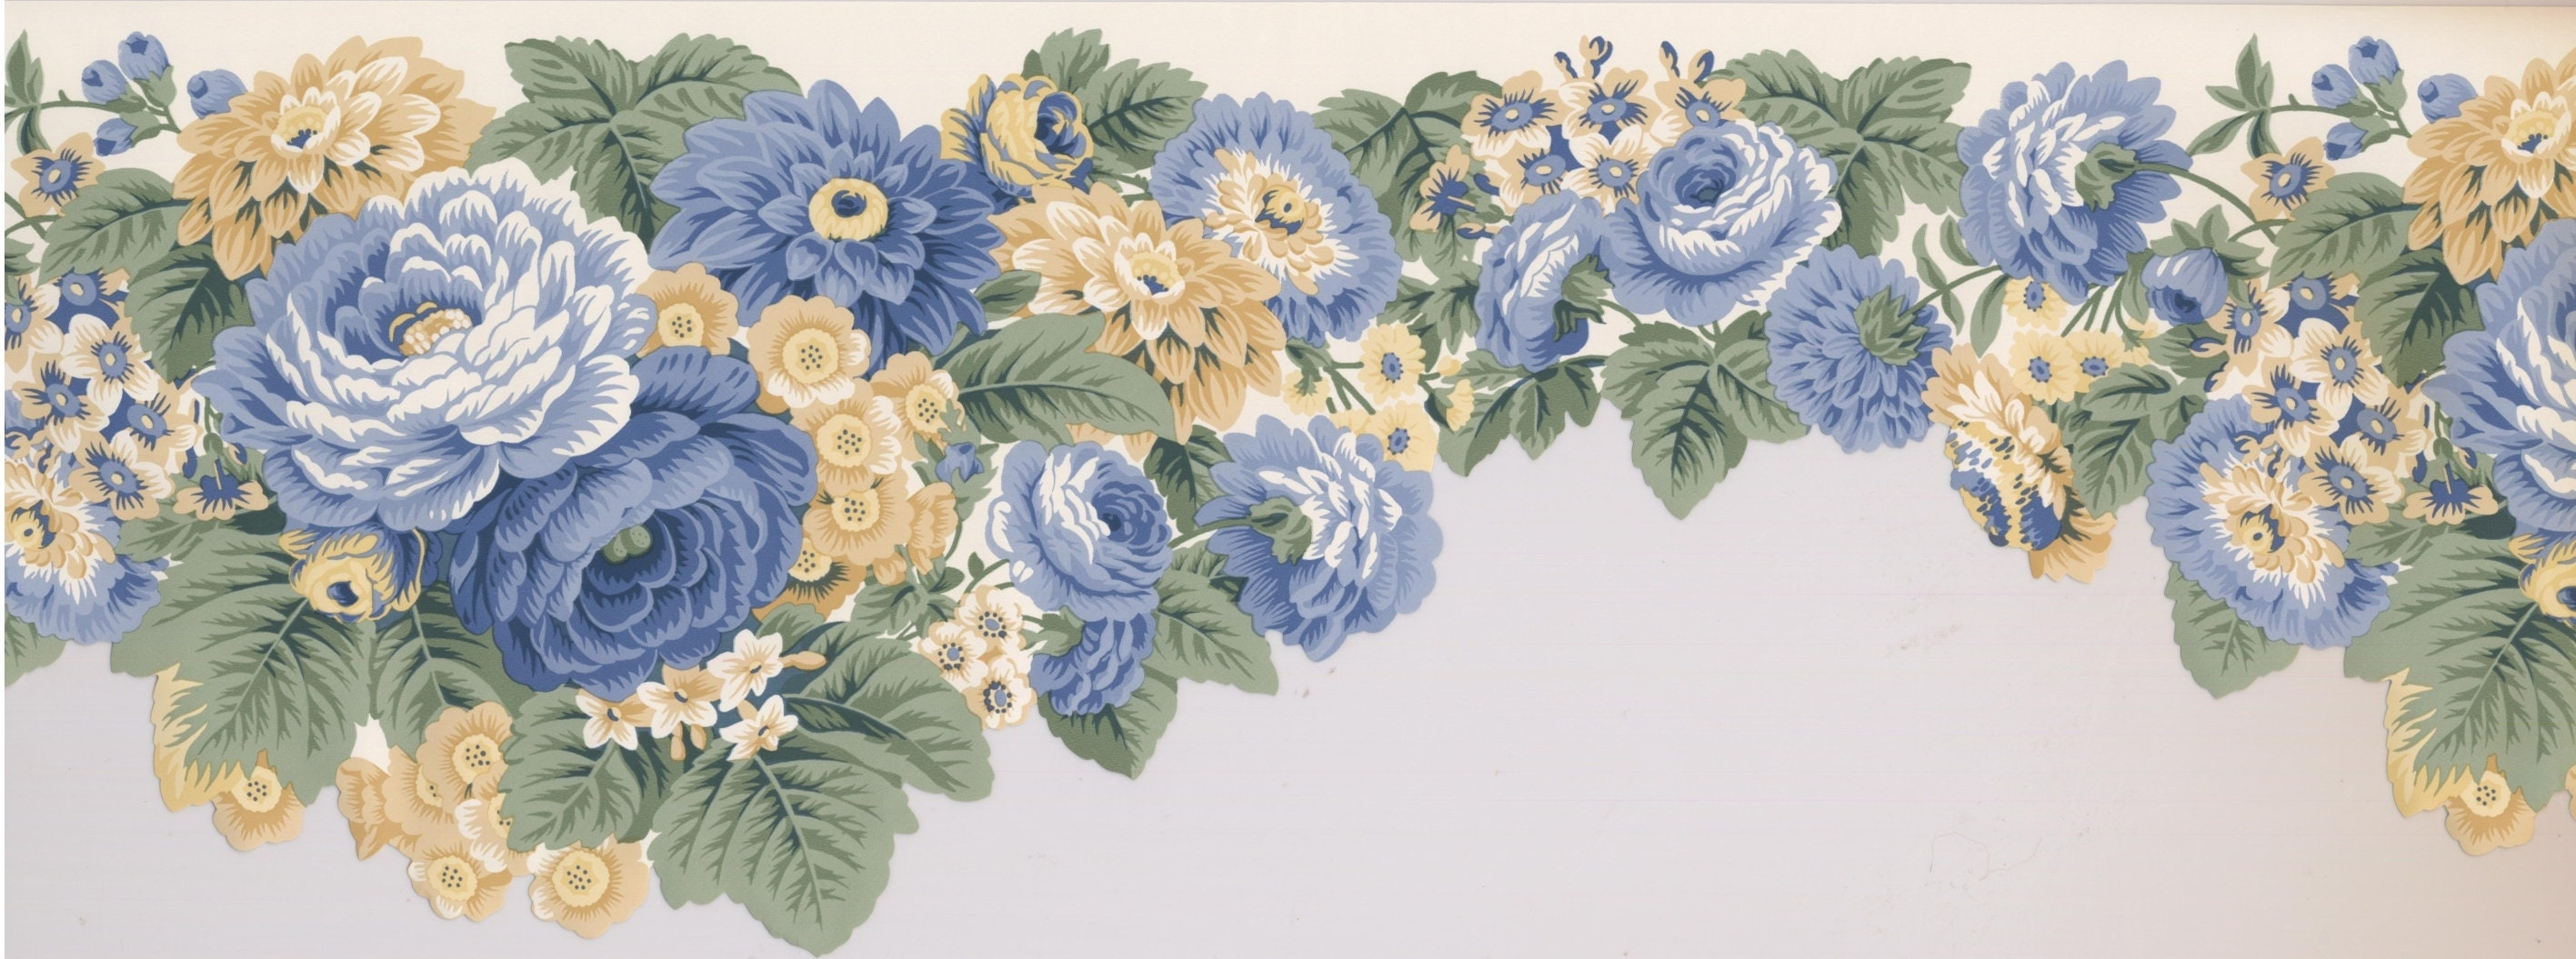 Prepasted Wallpaper Borders Floral Wall Paper Border 5506320 Etsy